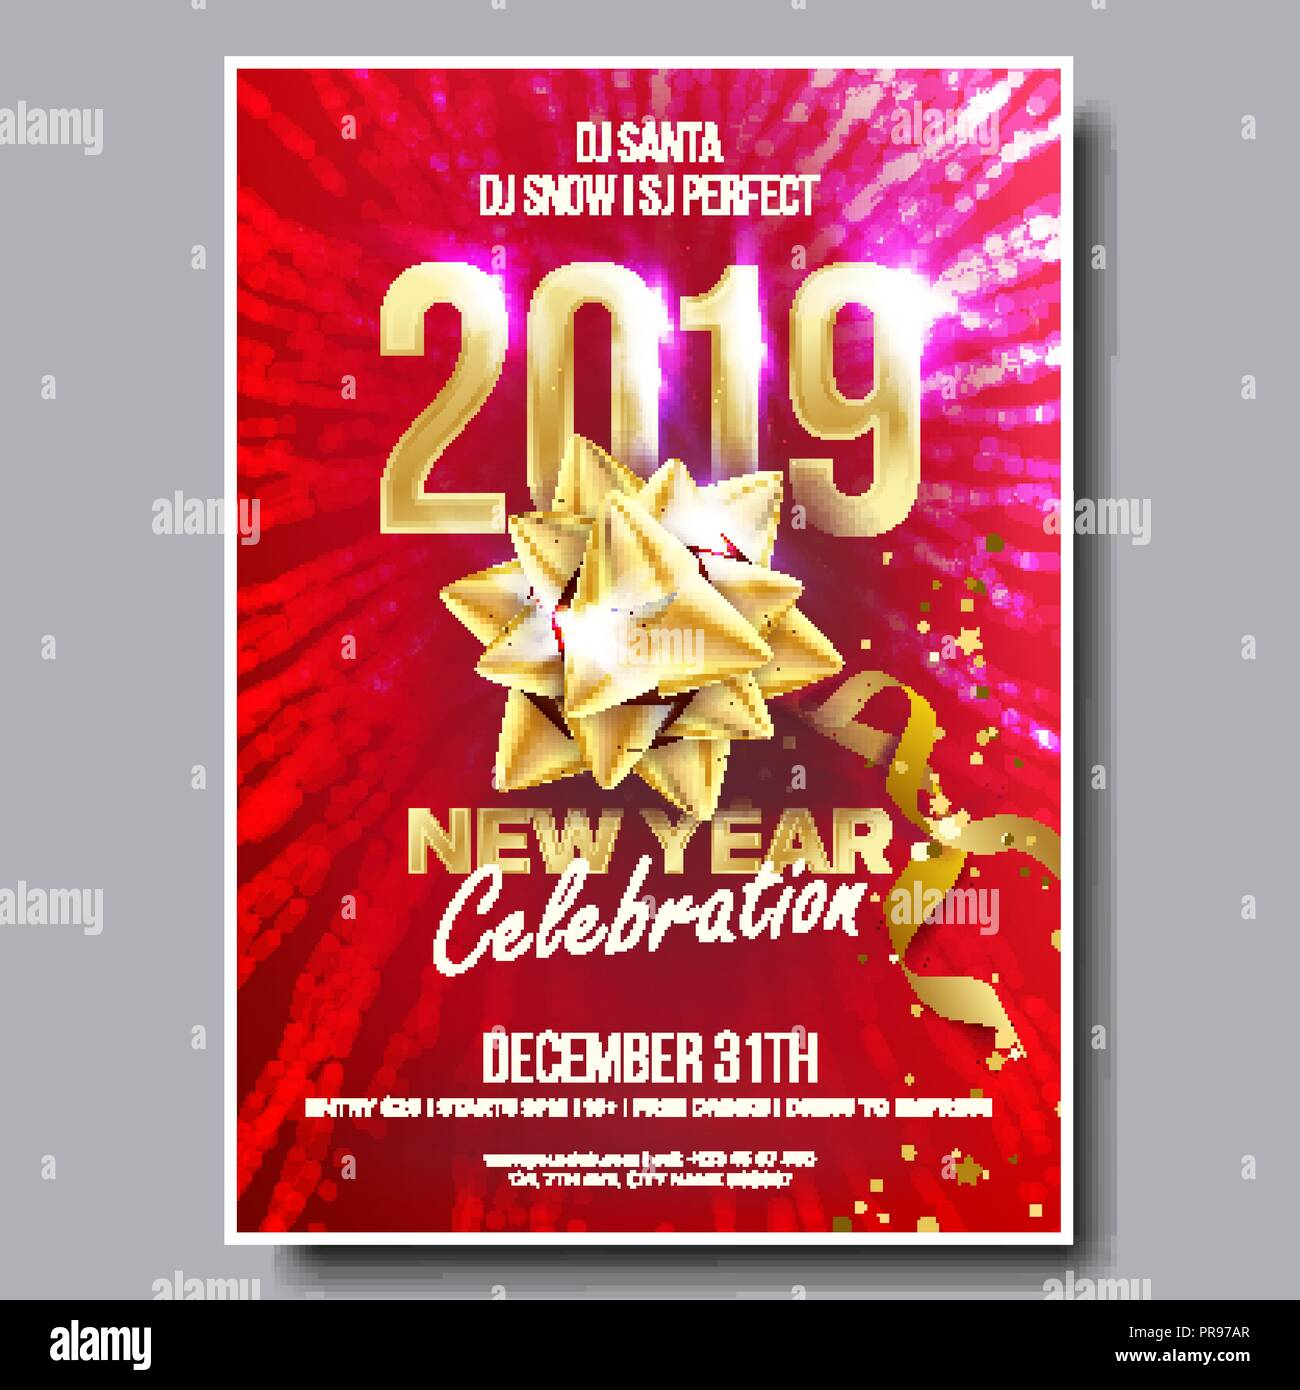 2019 party flyer poster vector happy new year celebration template winter background design illustration